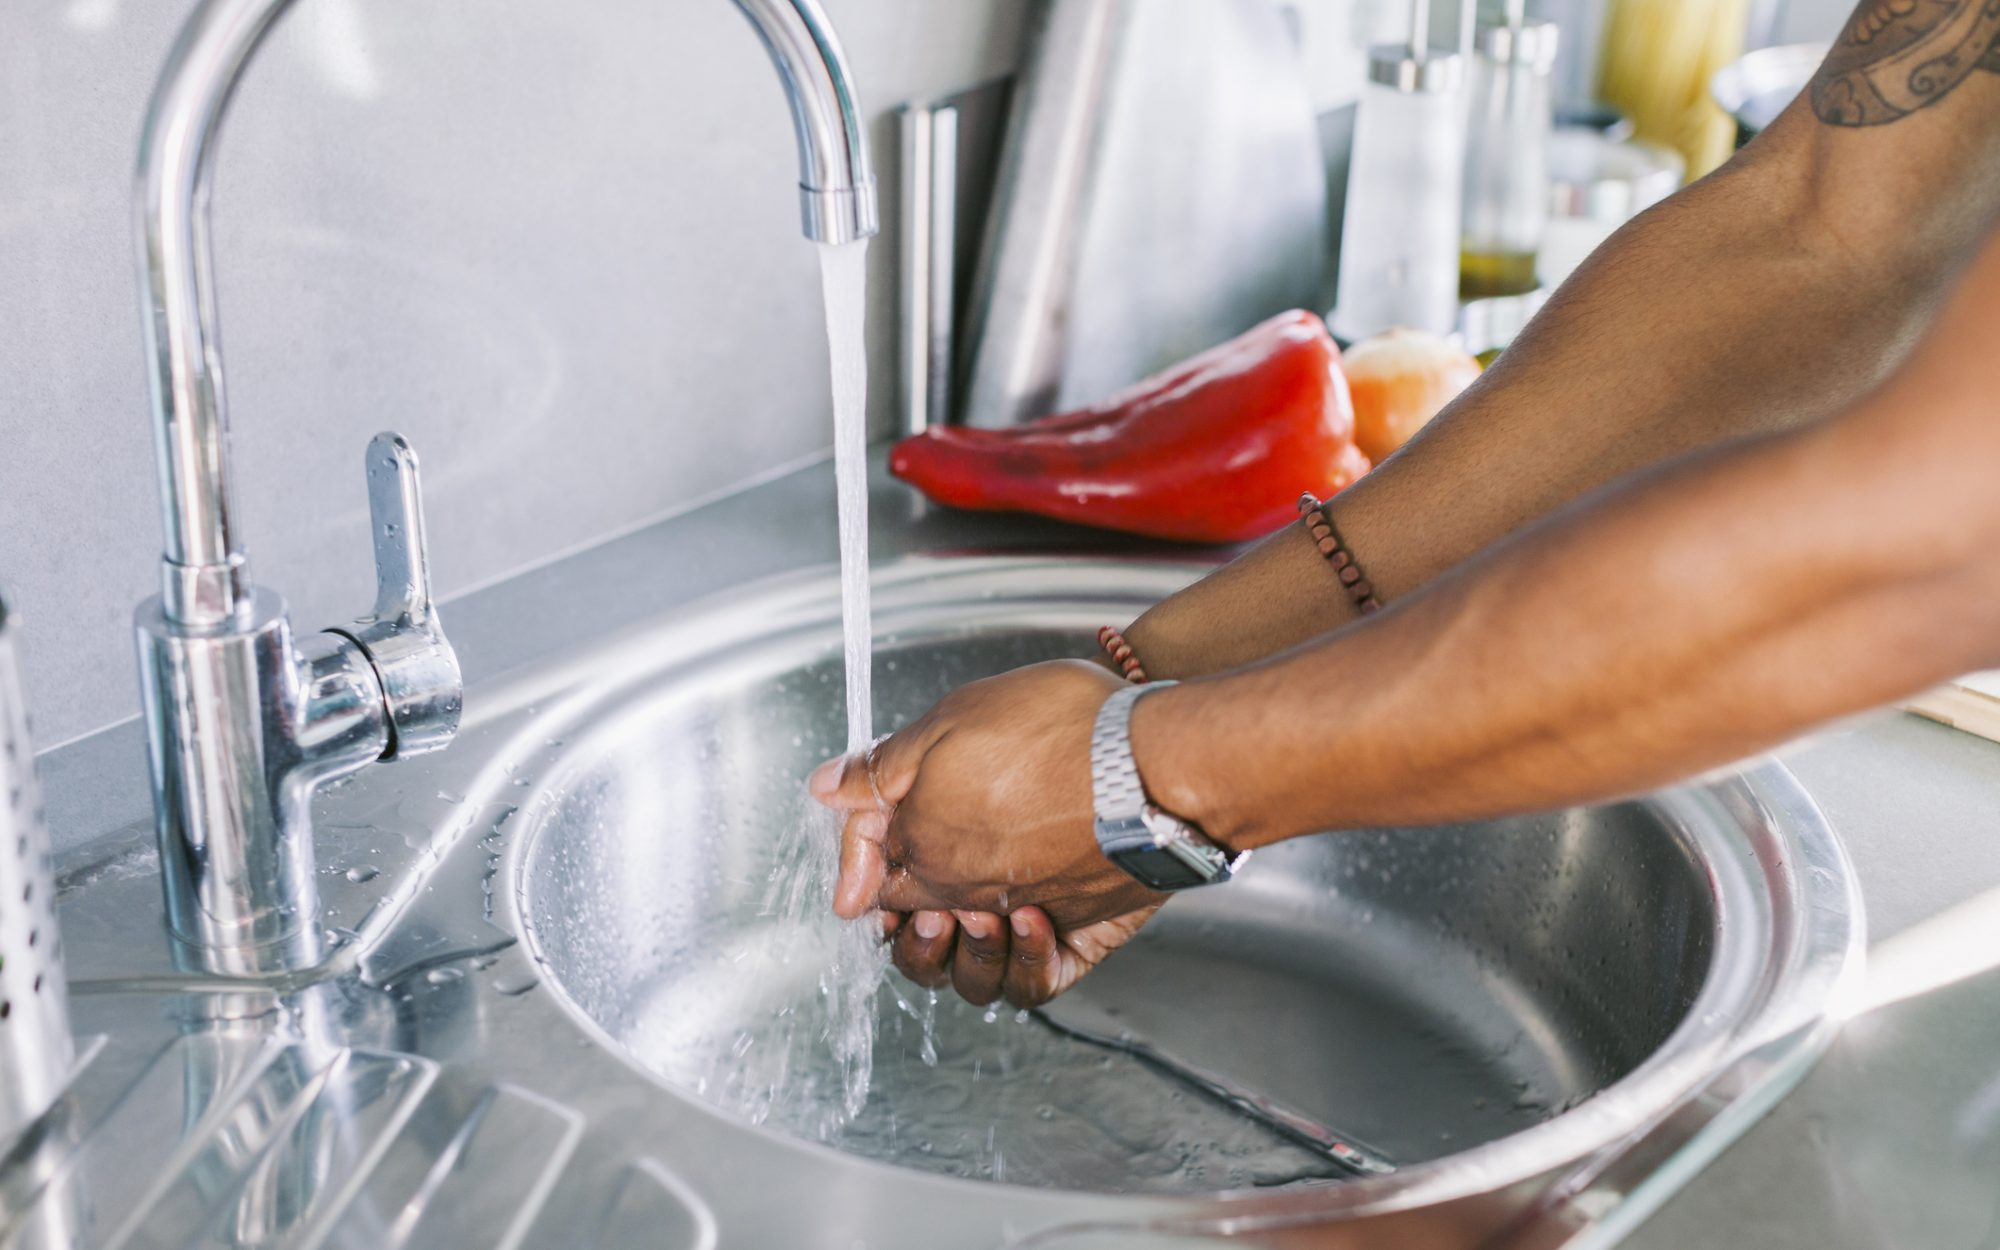 Everything your mother told you about washing your hands is wrong